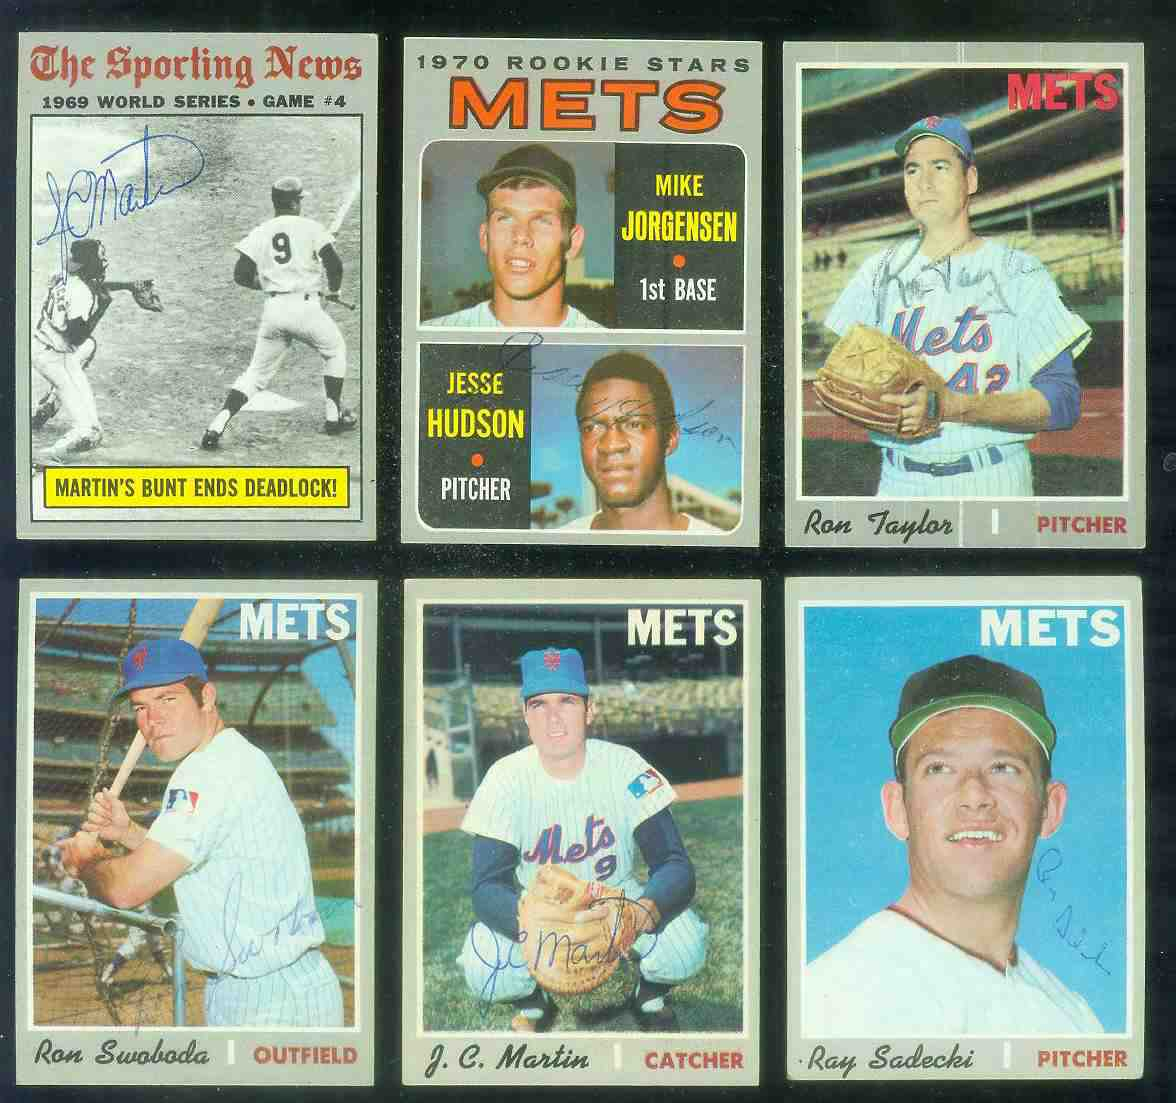 1970 Topps #419 Ron Taylor AUTOGRAPHED (Mets) Baseball cards value